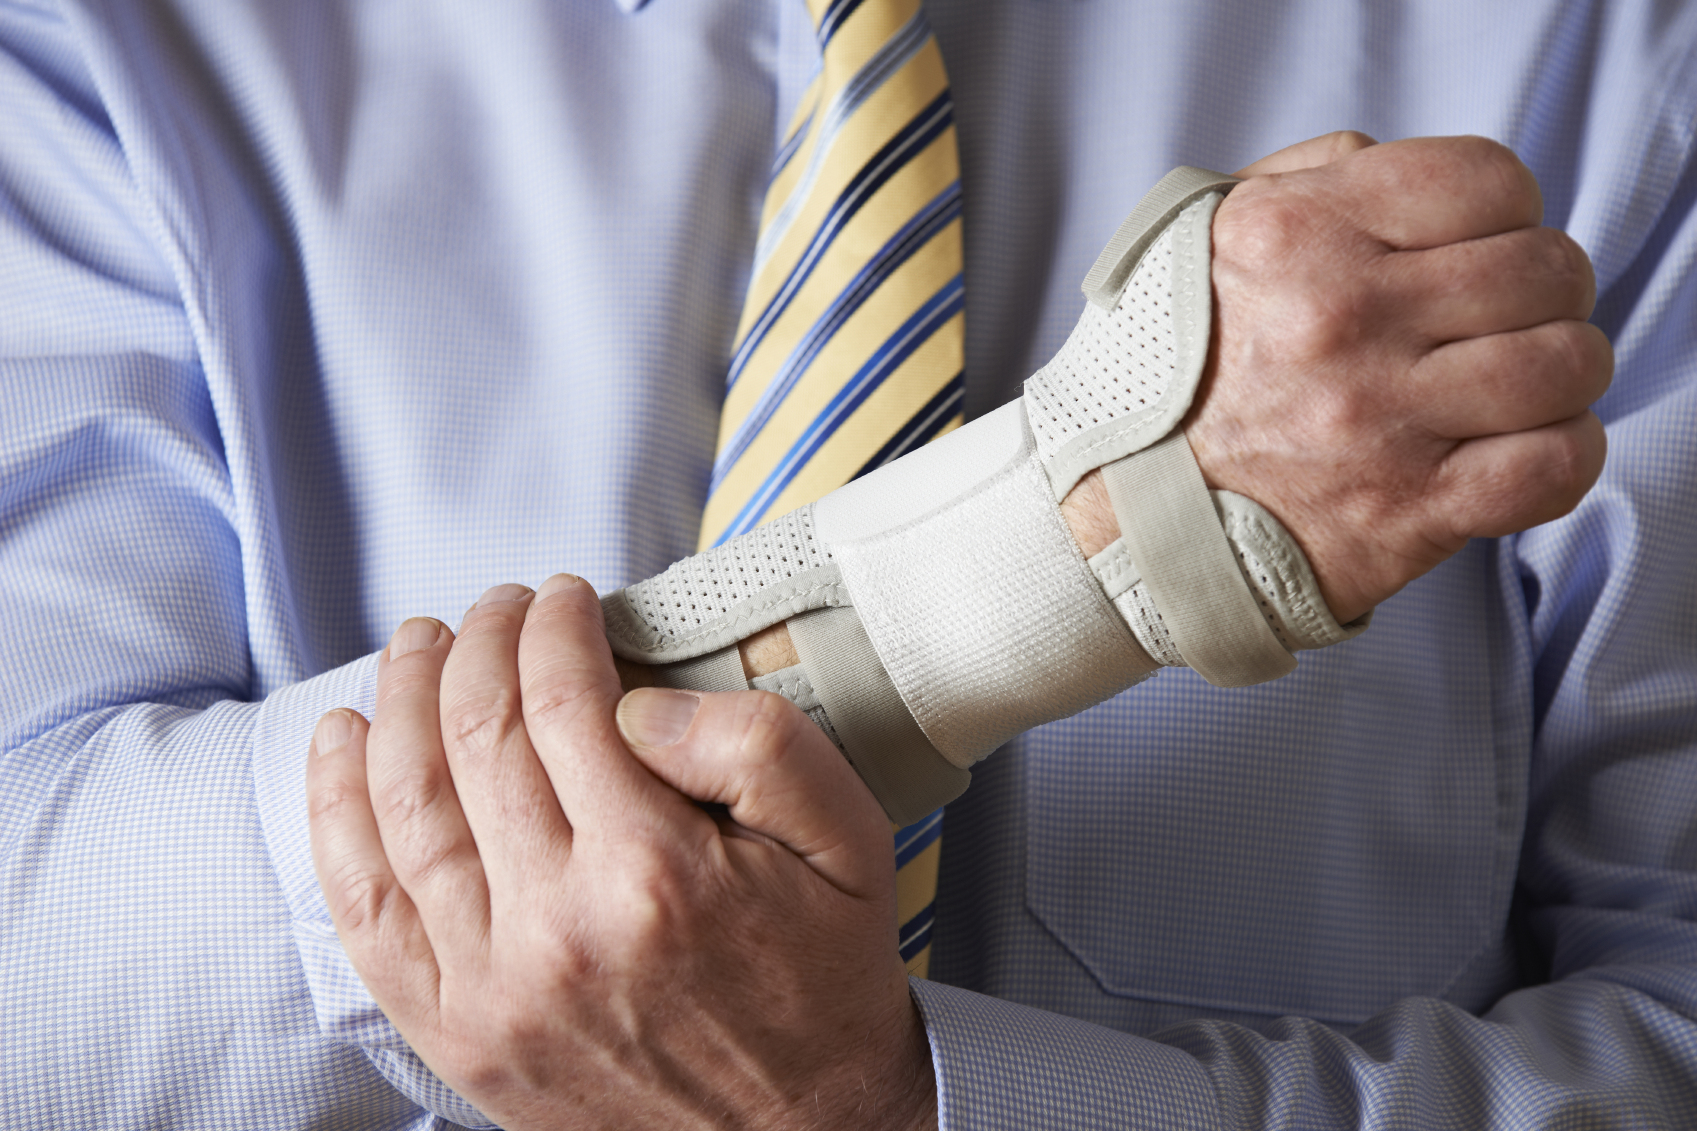 Difference between major and minor injuries